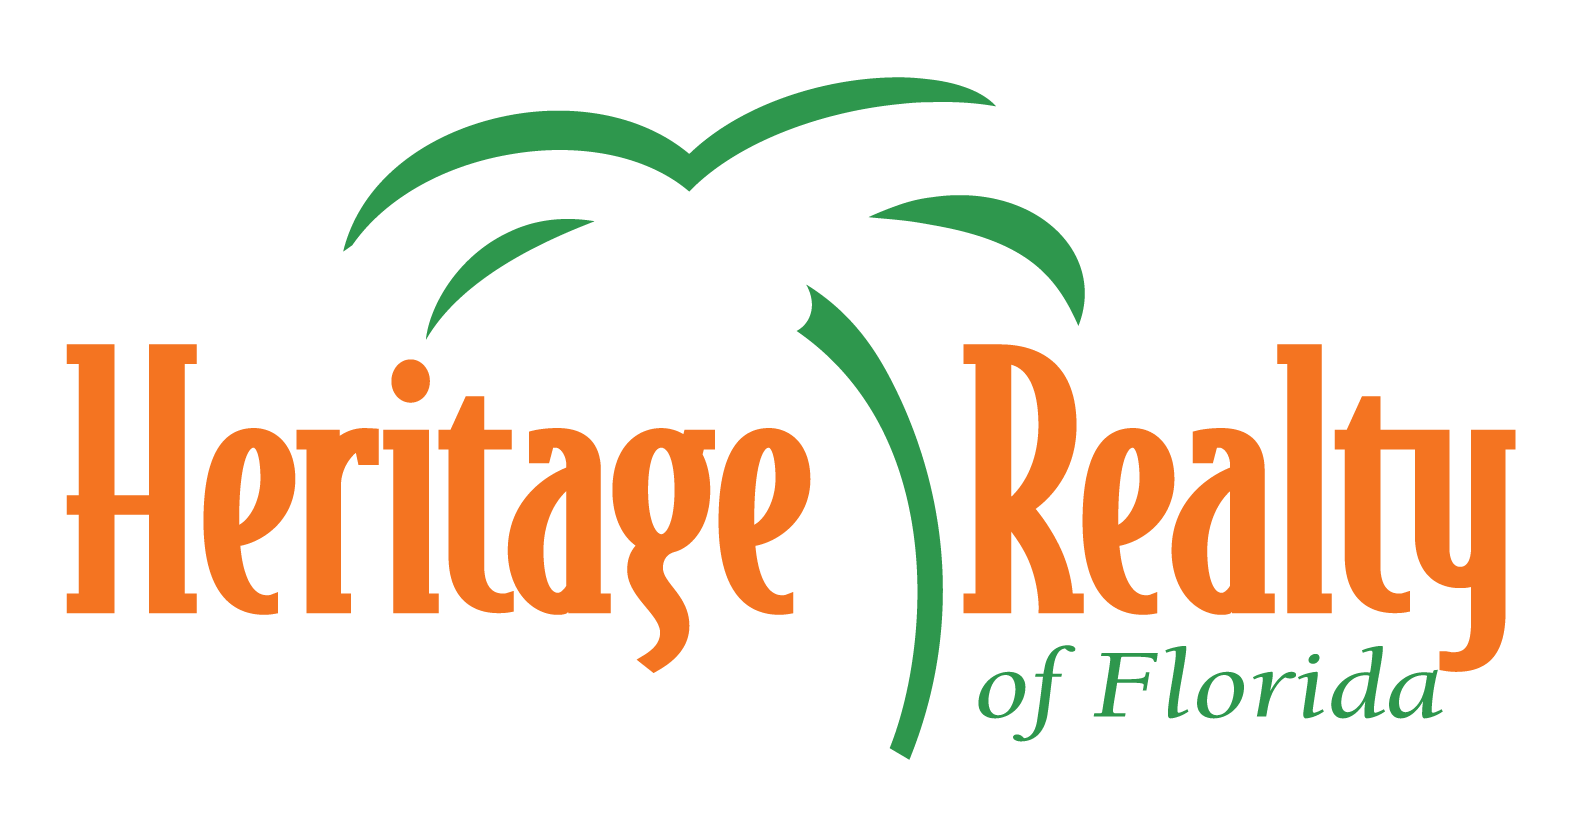 Heritage Realty of Florida